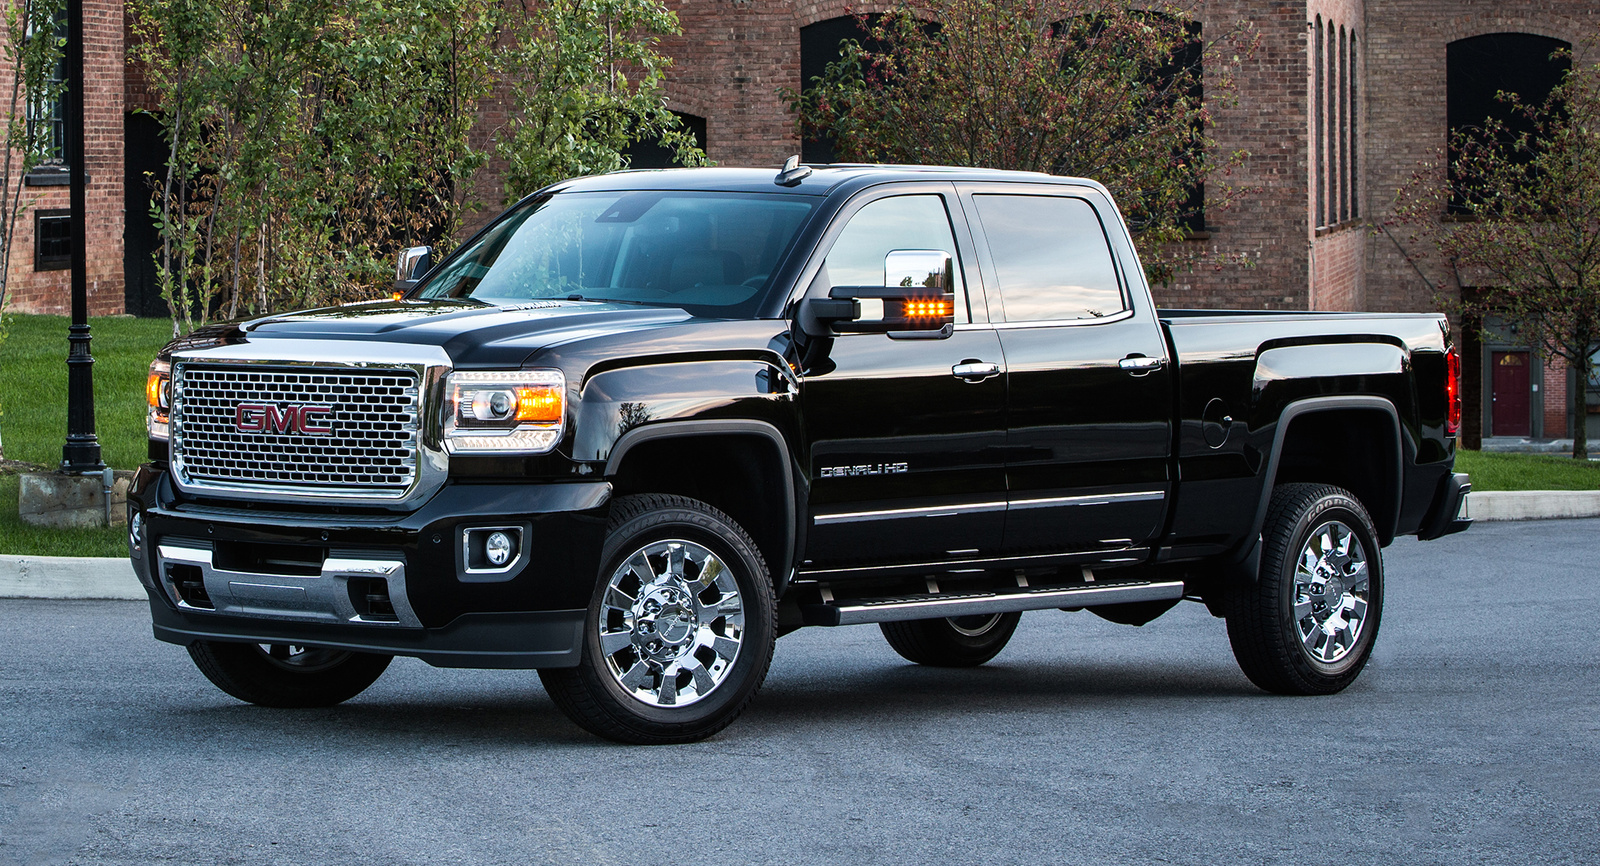 new 2015 2016 gmc sierra 2500hd for sale tampa fl cargurus. Black Bedroom Furniture Sets. Home Design Ideas